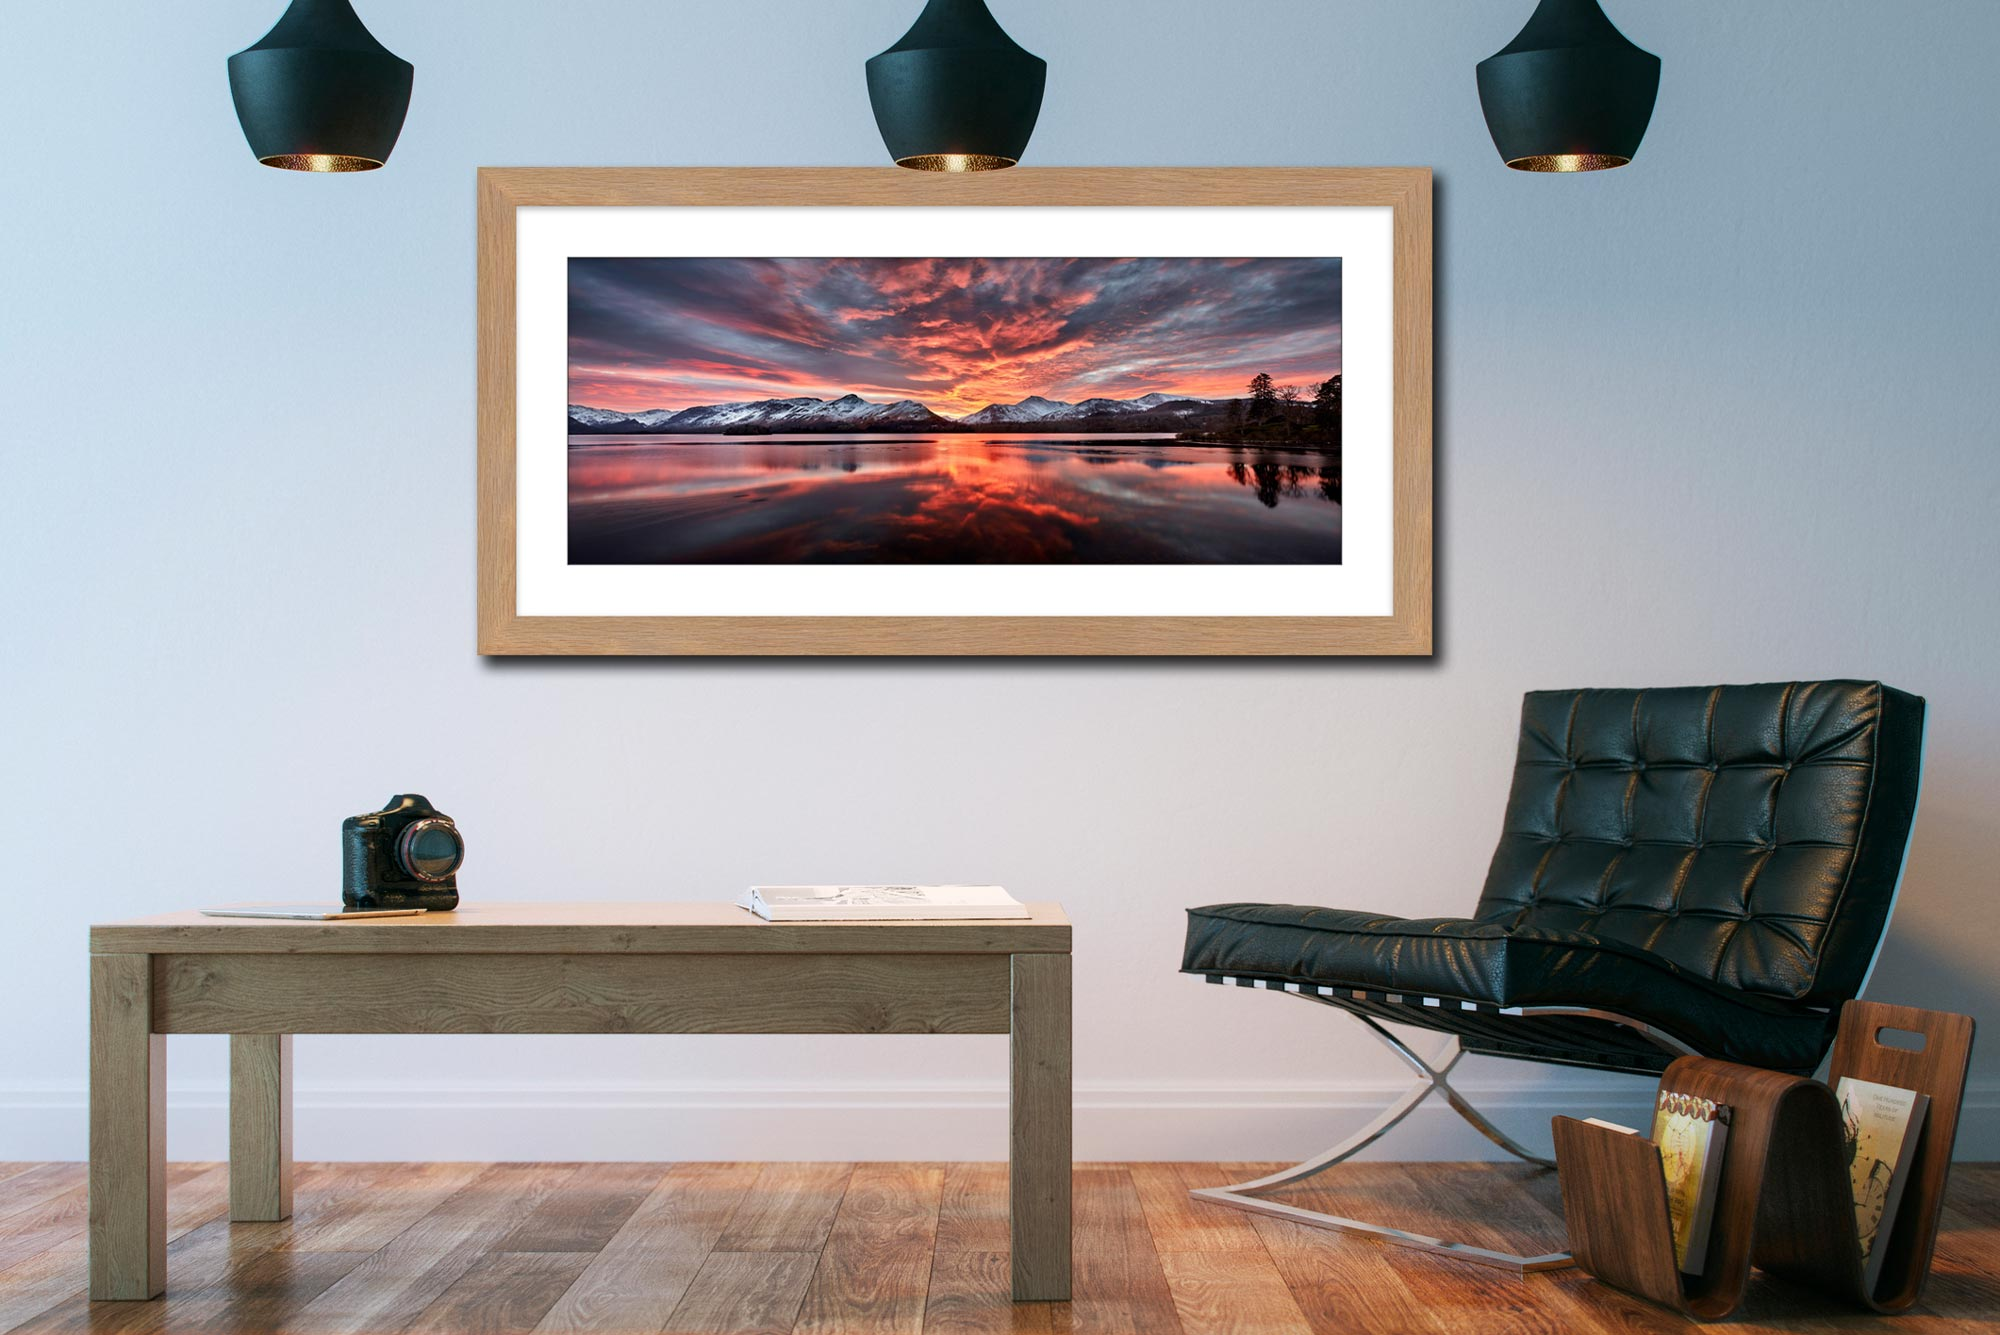 Red Skies Over Derwent Water - Framed Print with Mount on Wall